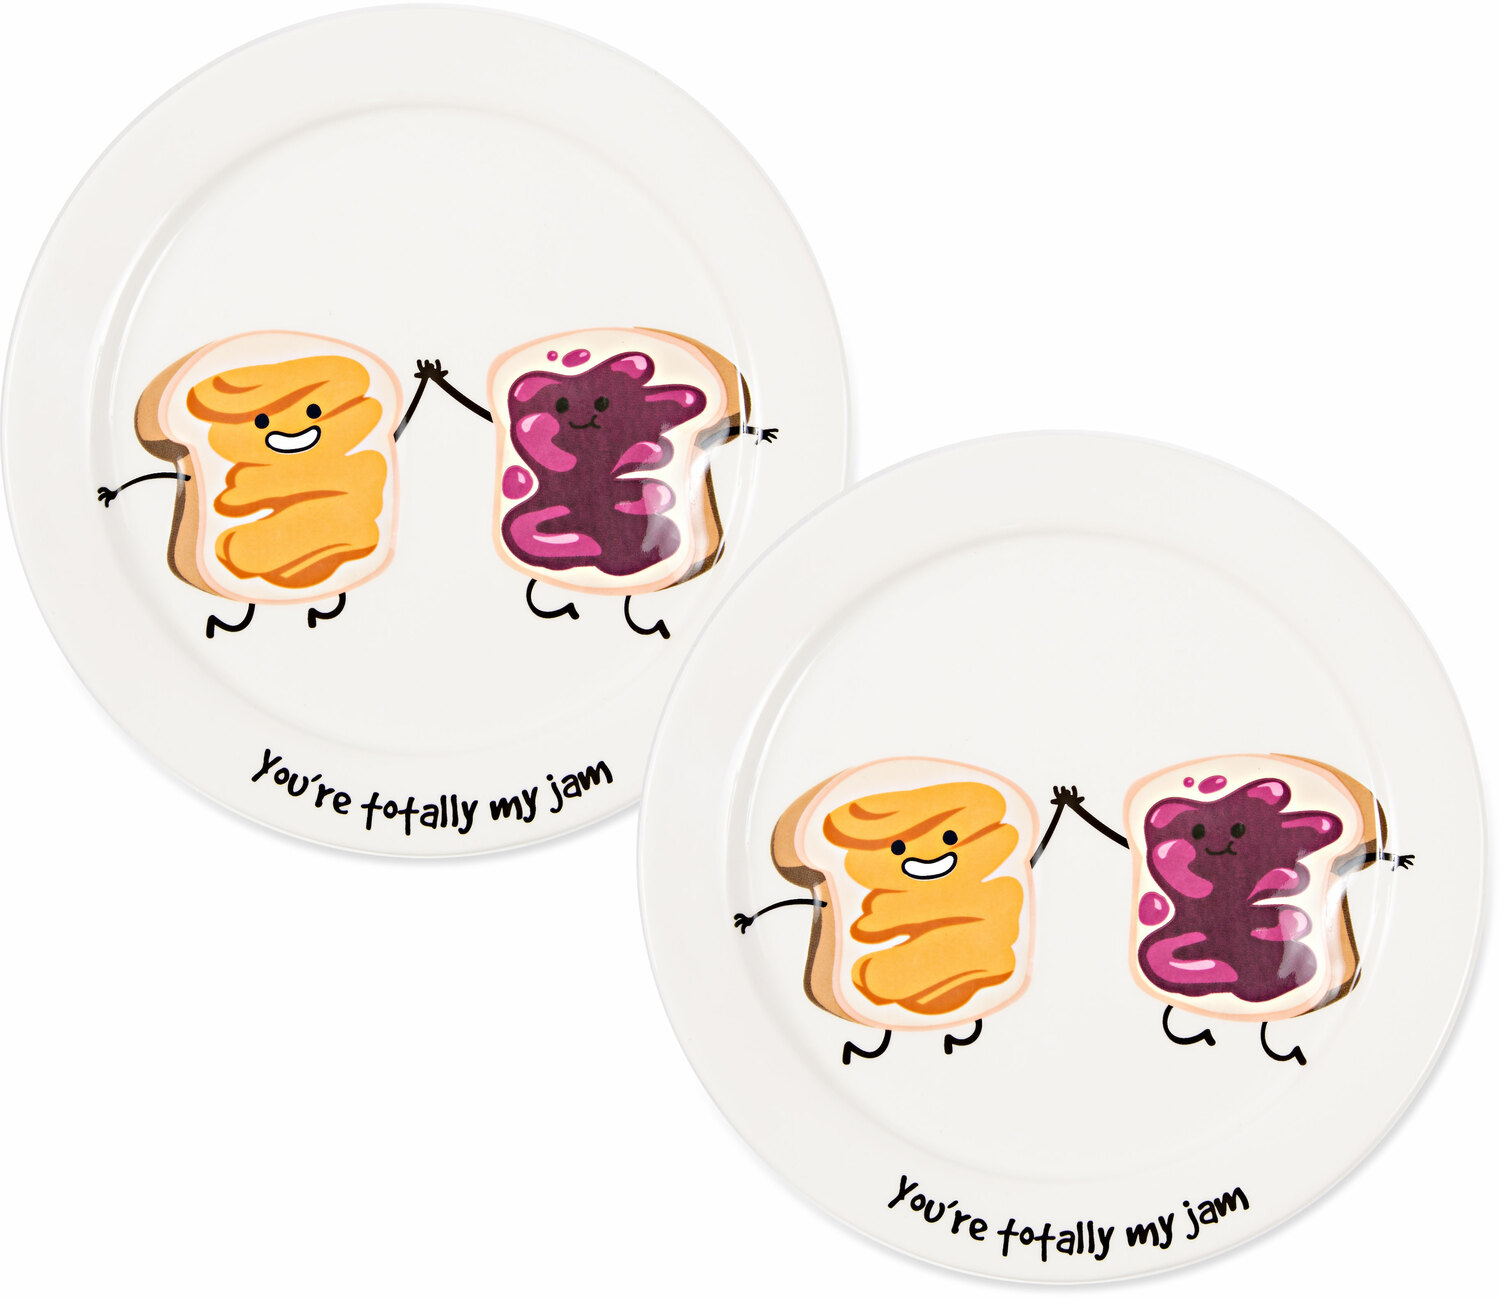 "My Jam by Late Night Snacks - My Jam - 7"" Appetizer Plates (Set of 2)"